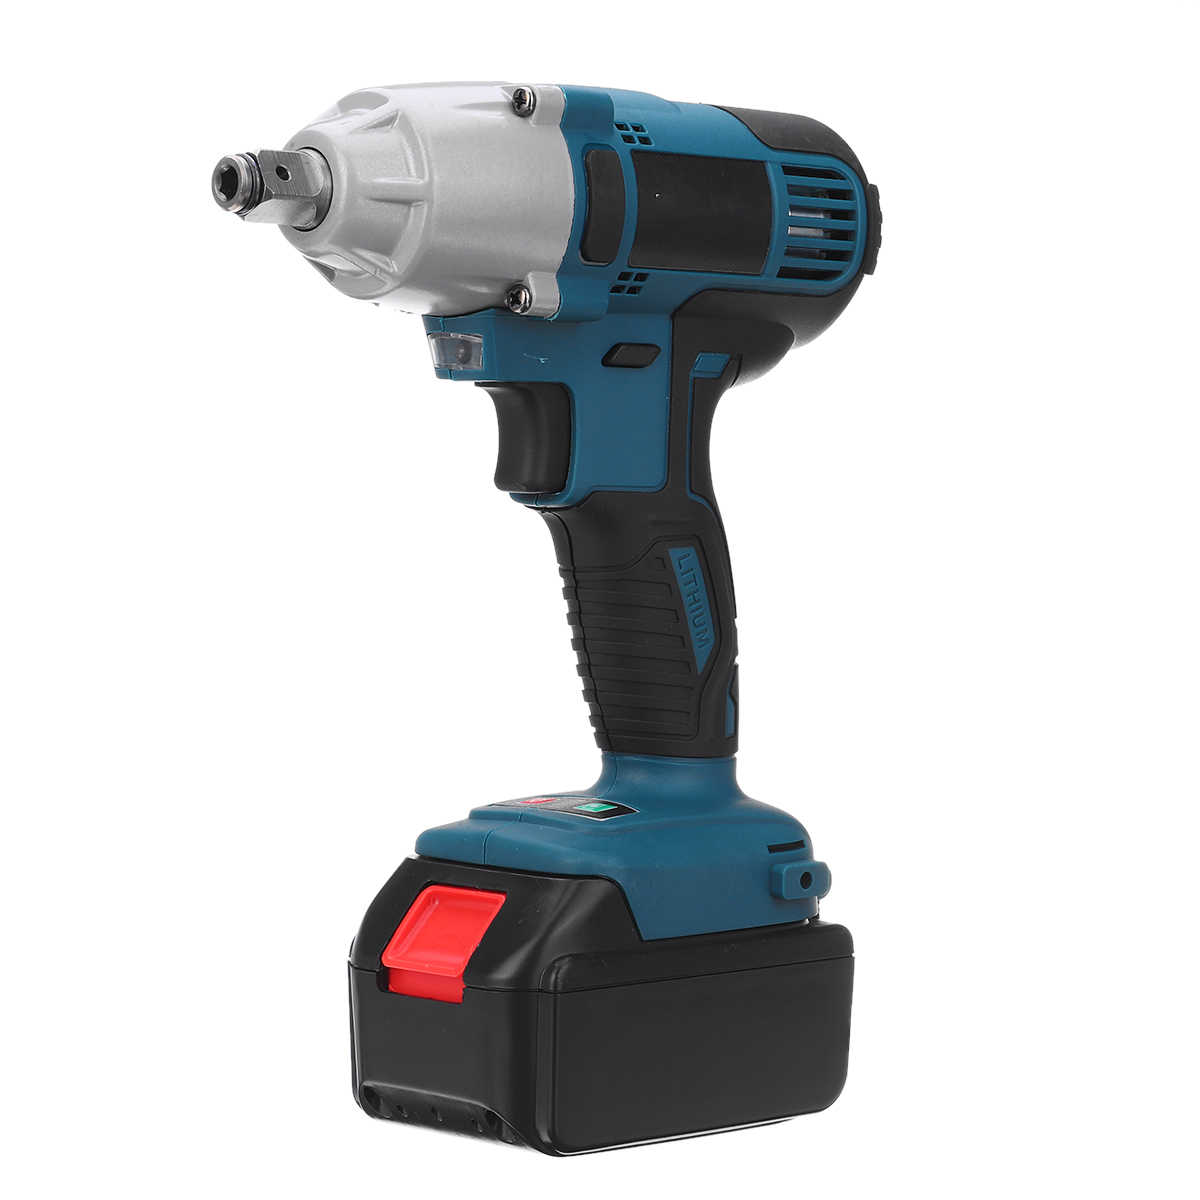 330N.m 4200RPM <font><b>Cordless</b></font> Wrench <font><b>Electric</b></font> <font><b>Impact</b></font> Wrench <font><b>Drill</b></font> <font><b>Screwdriver</b></font> with LED lights 128VF 16800mah Battery Power Tool image